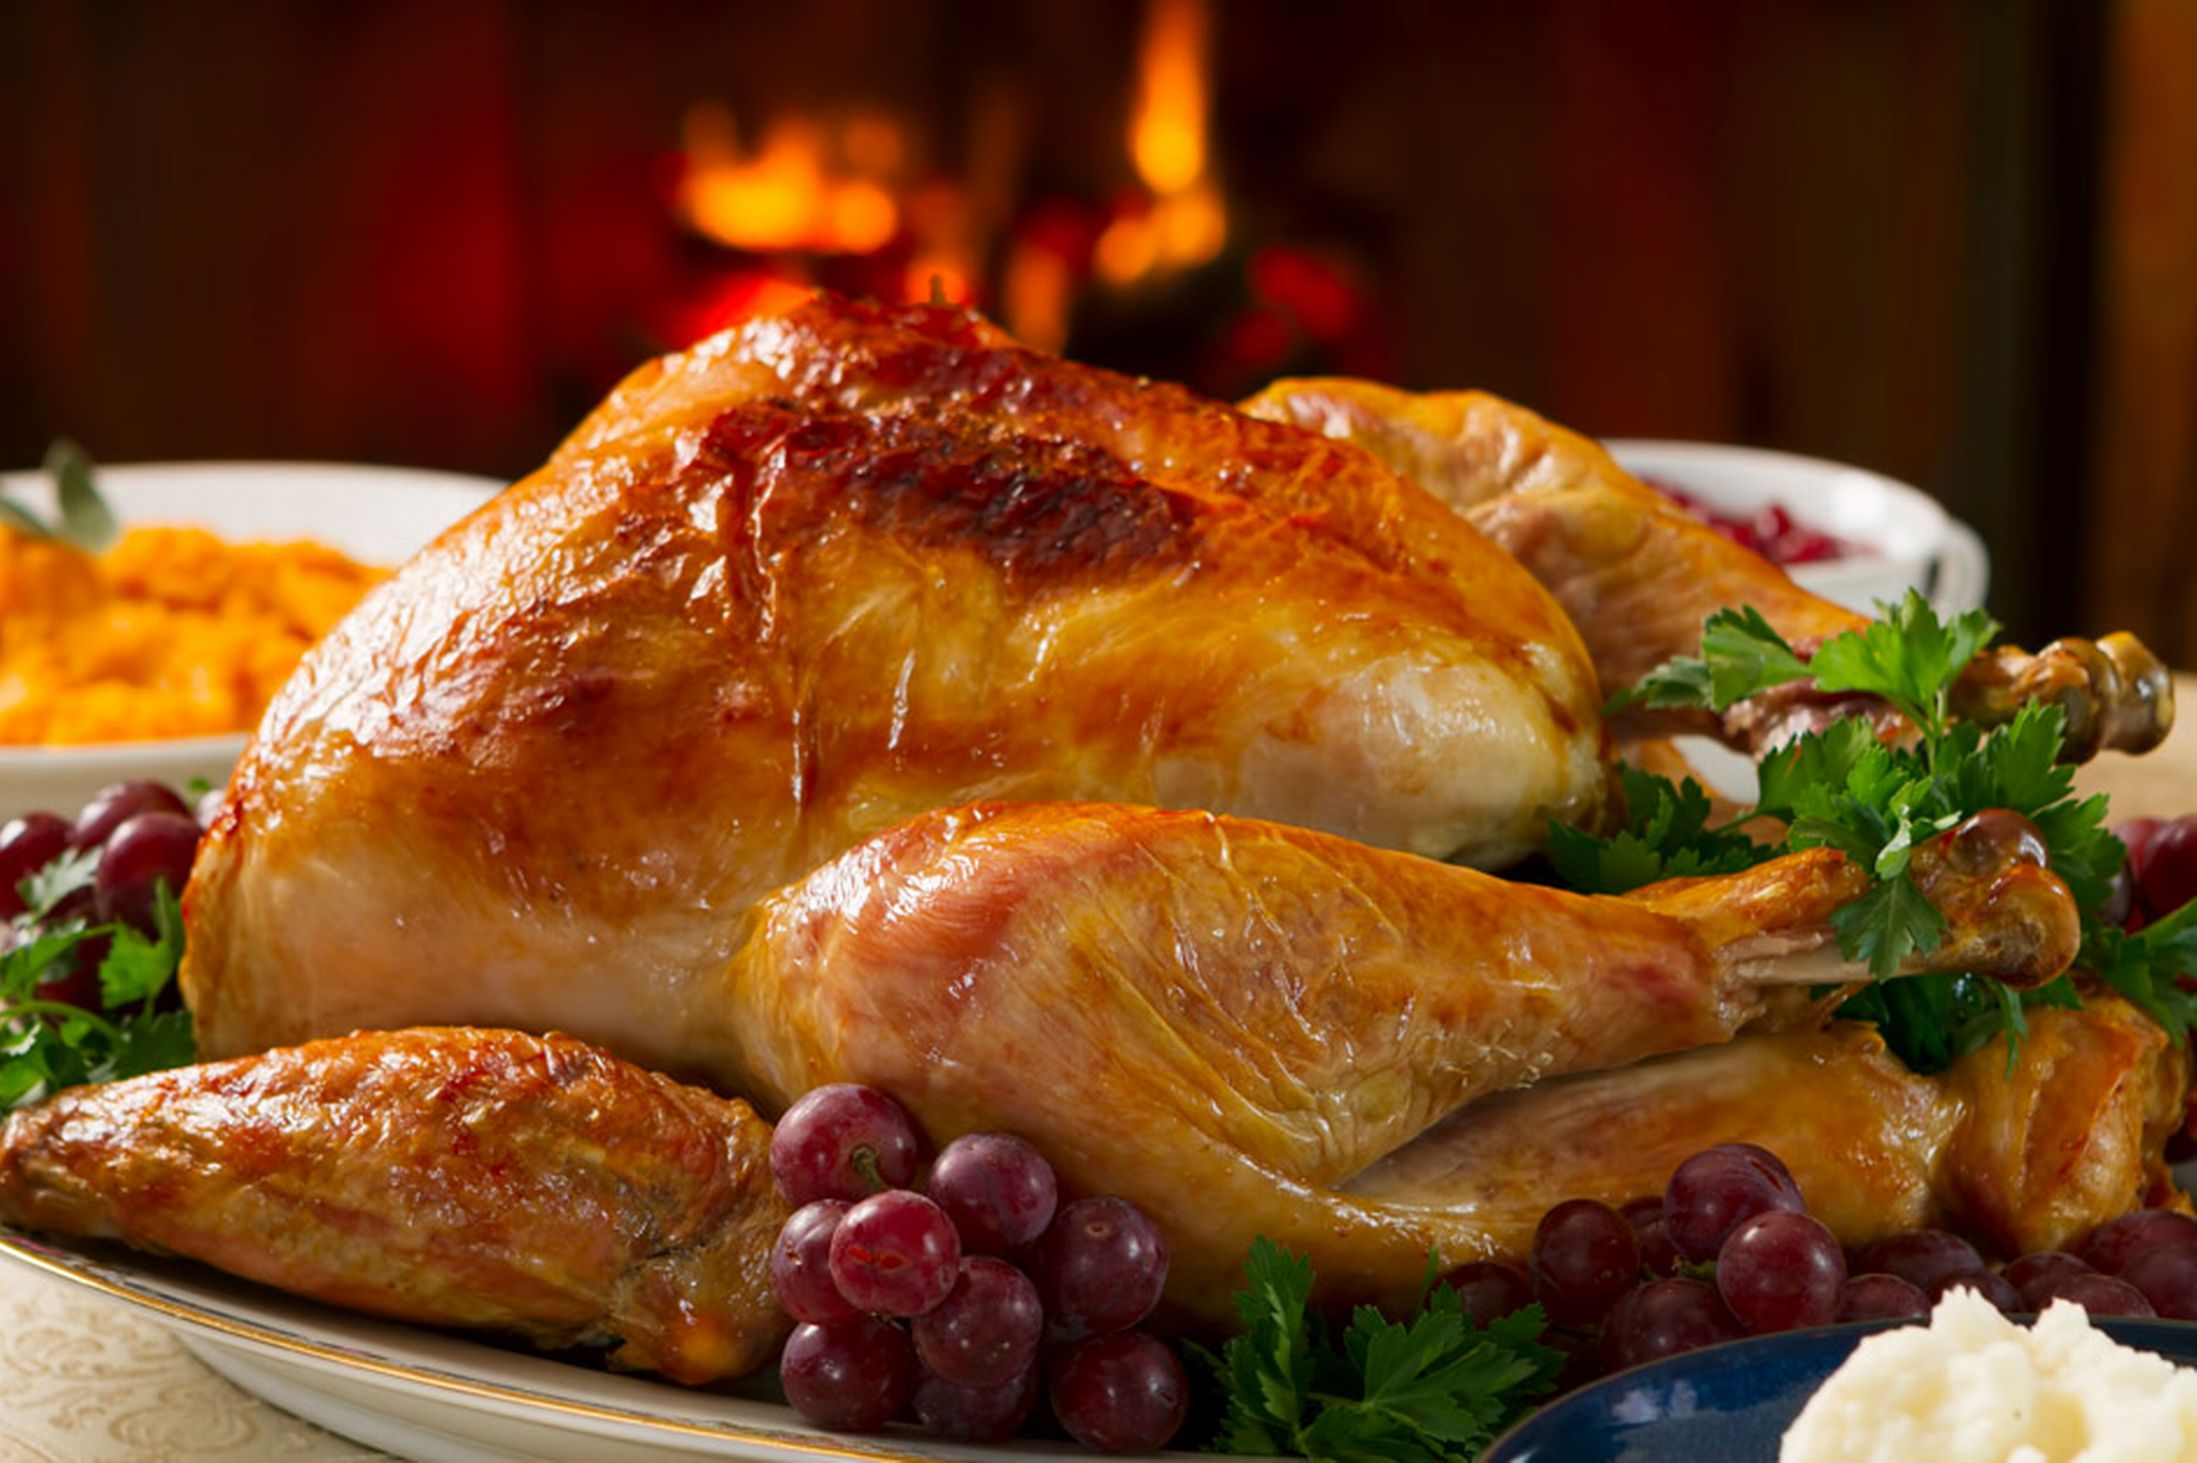 The Ultimate Guide to Juicy Thanksgiving Turkeys